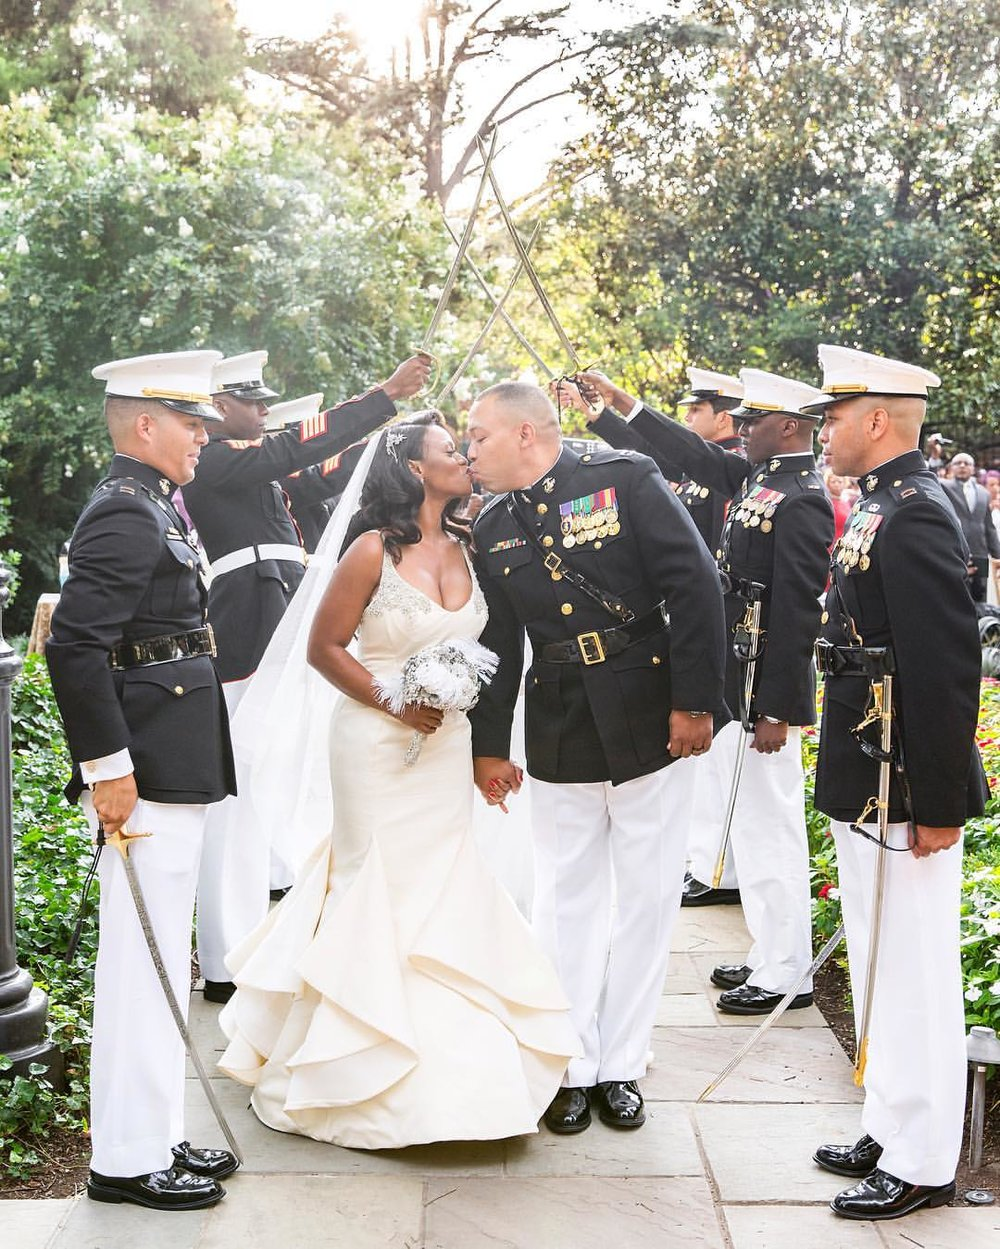 Charo + Tony on September 3, 2016  ♥ Iris Mannings Photography at   The Home of the Commandant (SE DC)